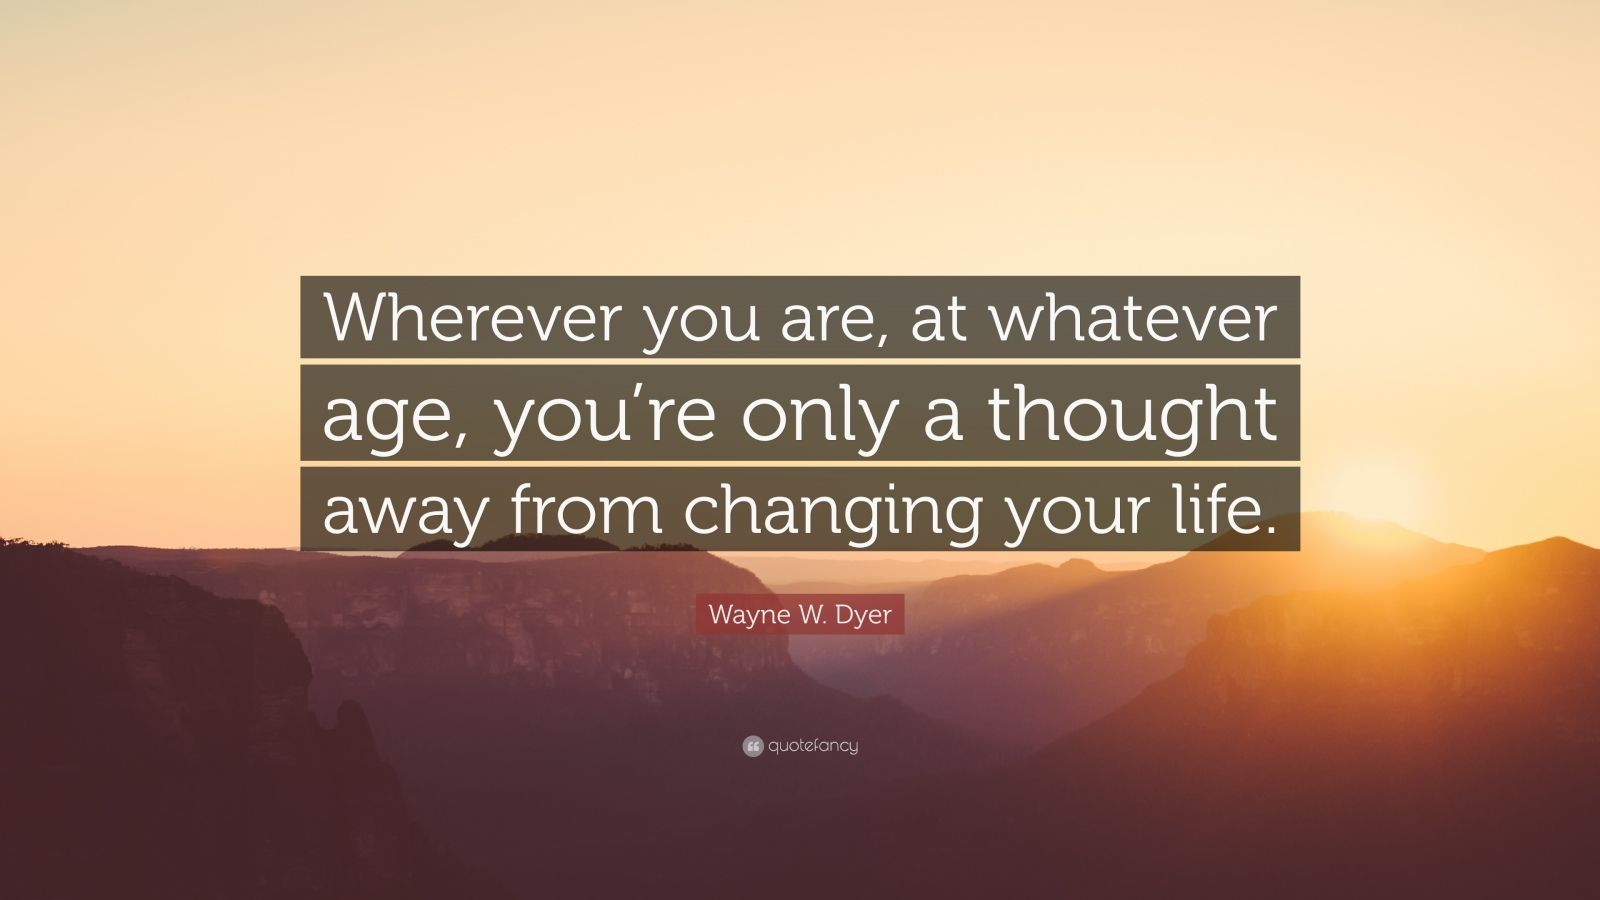 """Wayne W. Dyer Quote: """"Wherever you are, at whatever age, you're only a thought away from changing your life."""""""